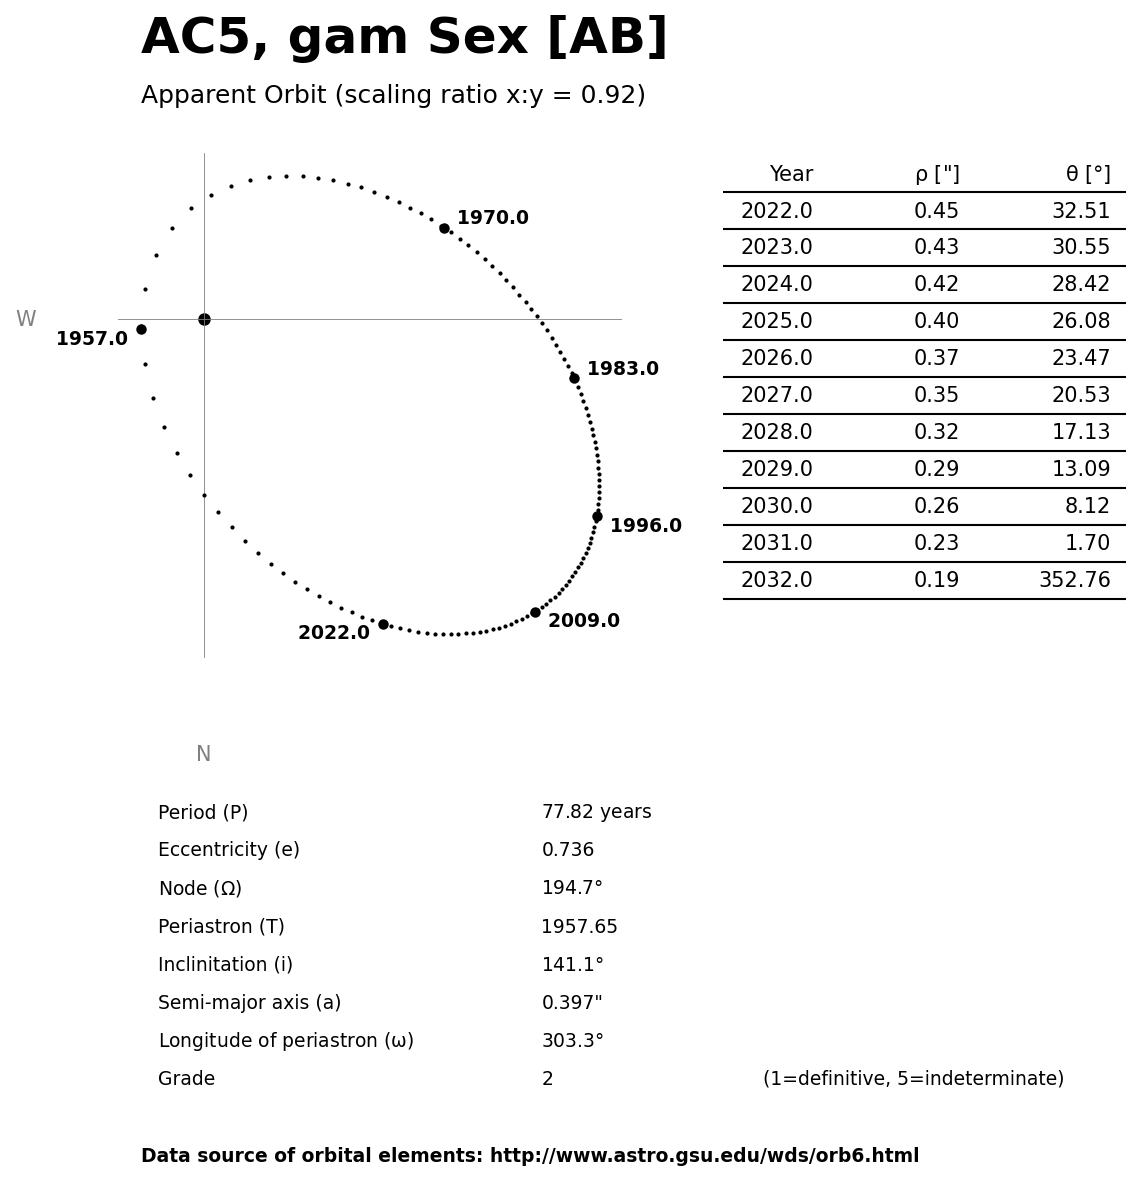 ../images/binary-star-orbits/AC5-AB-orbit.jpg